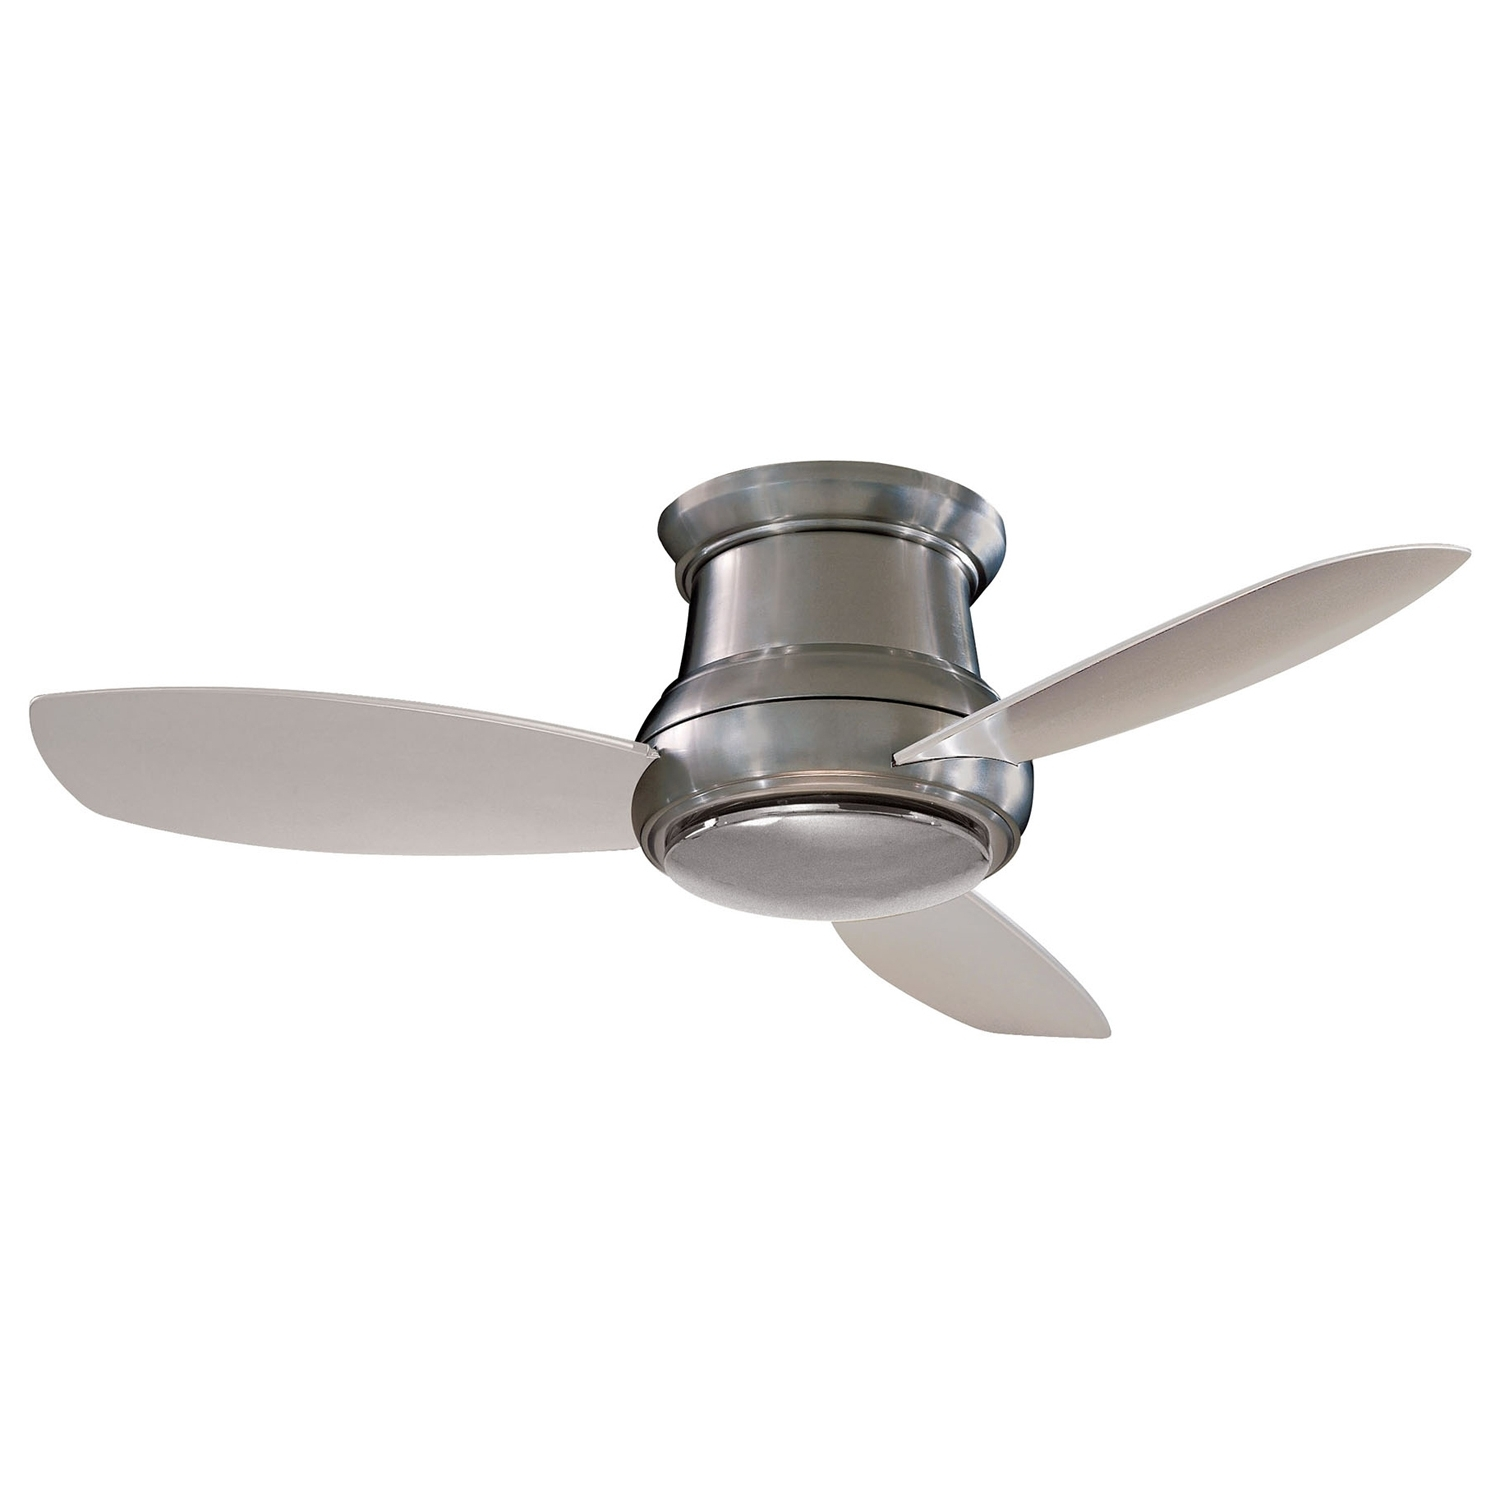 Ceiling Fan: Remarkable 36 Outdoor Ceiling Fan For Home 36 Inch Fans With Regard To Recent 36 Inch Outdoor Ceiling Fans With Lights (View 11 of 20)